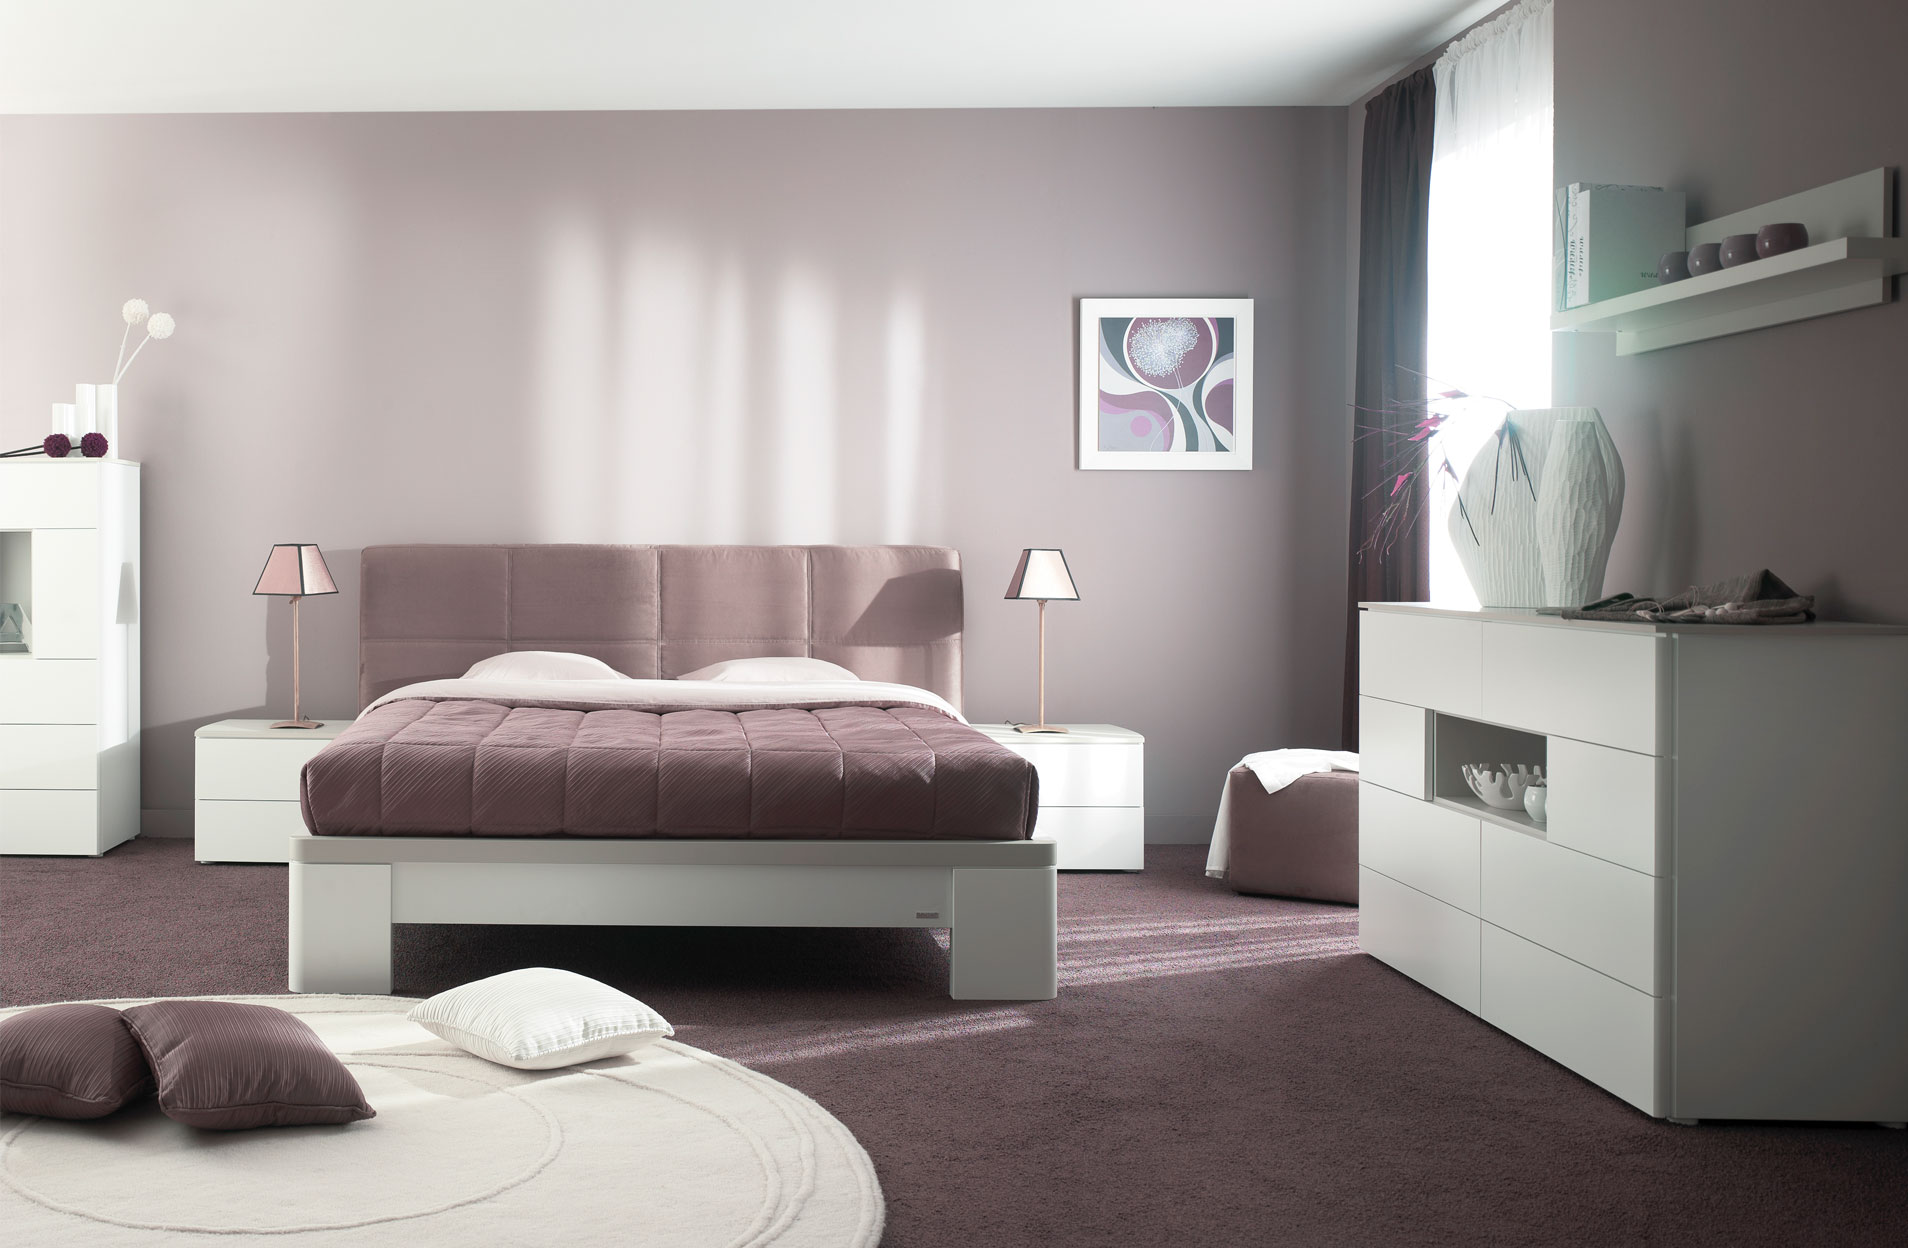 Inspiration d coration de chambre contemporaine gautier opalia for Exemple de chambre adulte